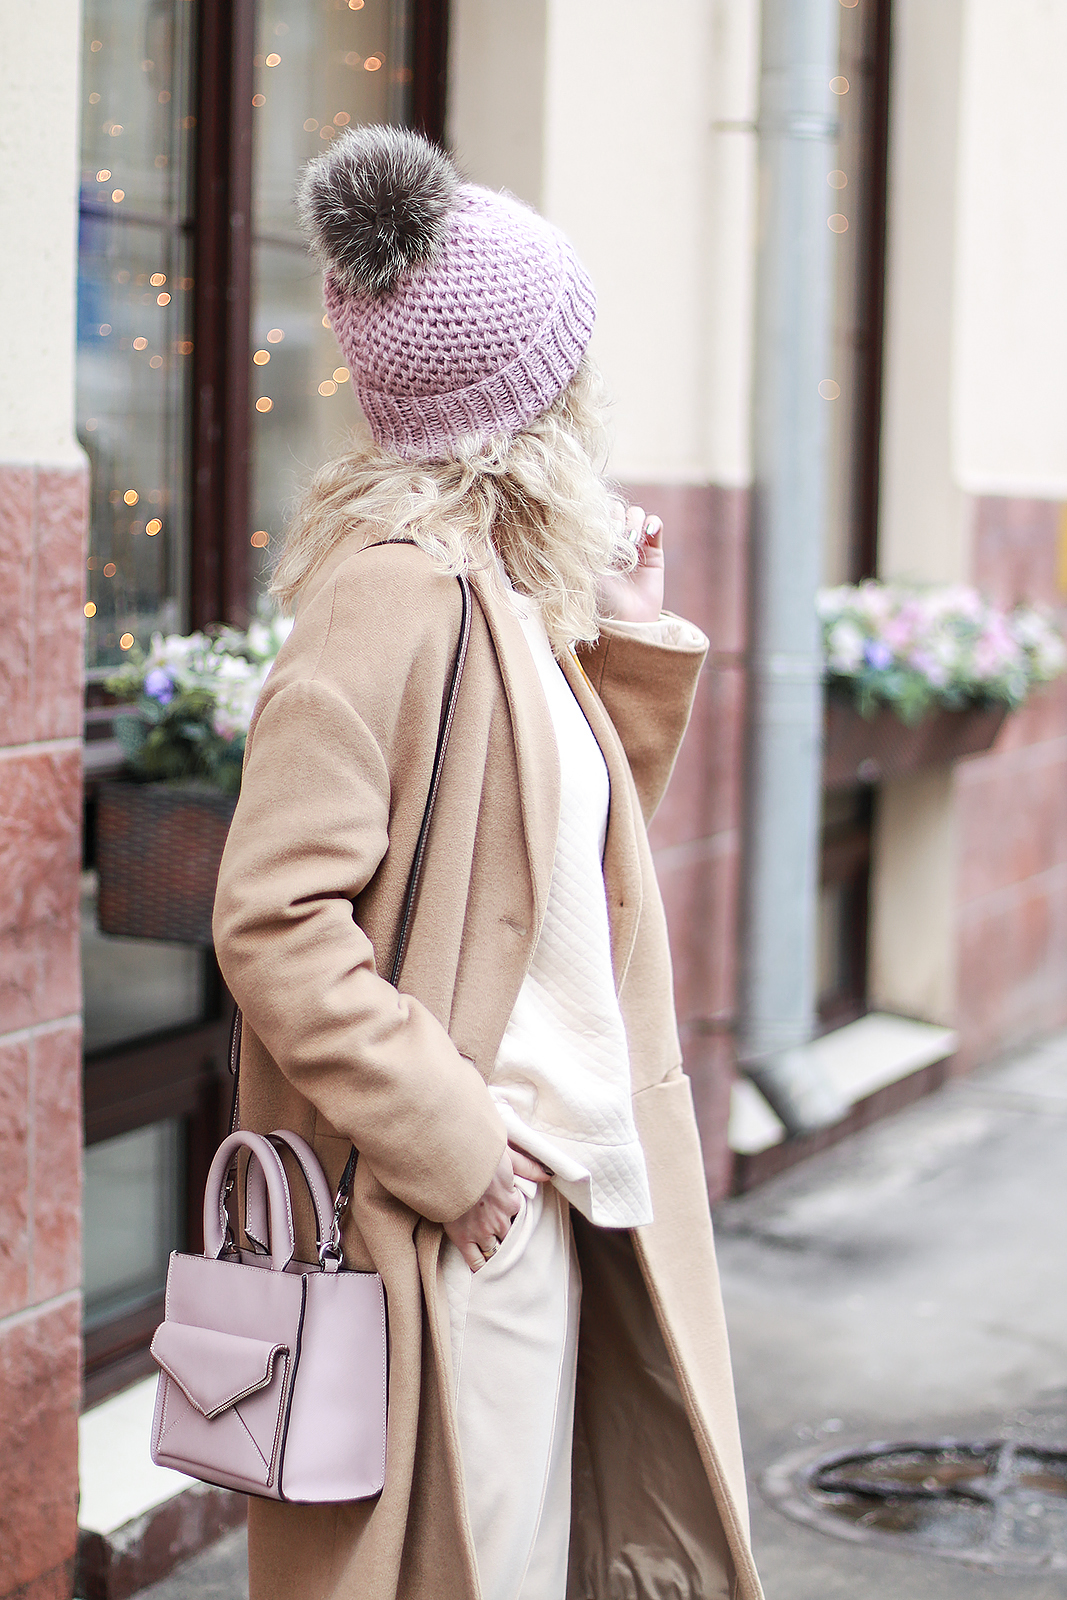 Margarita_Maslova Ritalifestyle_Fashion_blogger_Moscow_pastel_look_sport_chic_superstar_sneakers_pink_bagcame_coat1